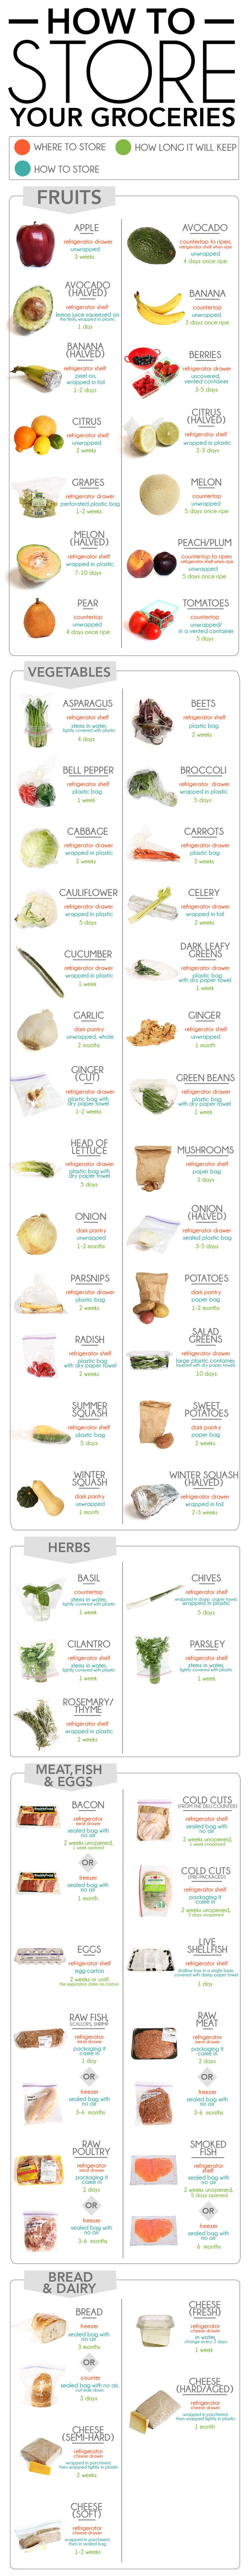 How To Store Your Groceries #clean #recipes #healthy #eatclean #recipe